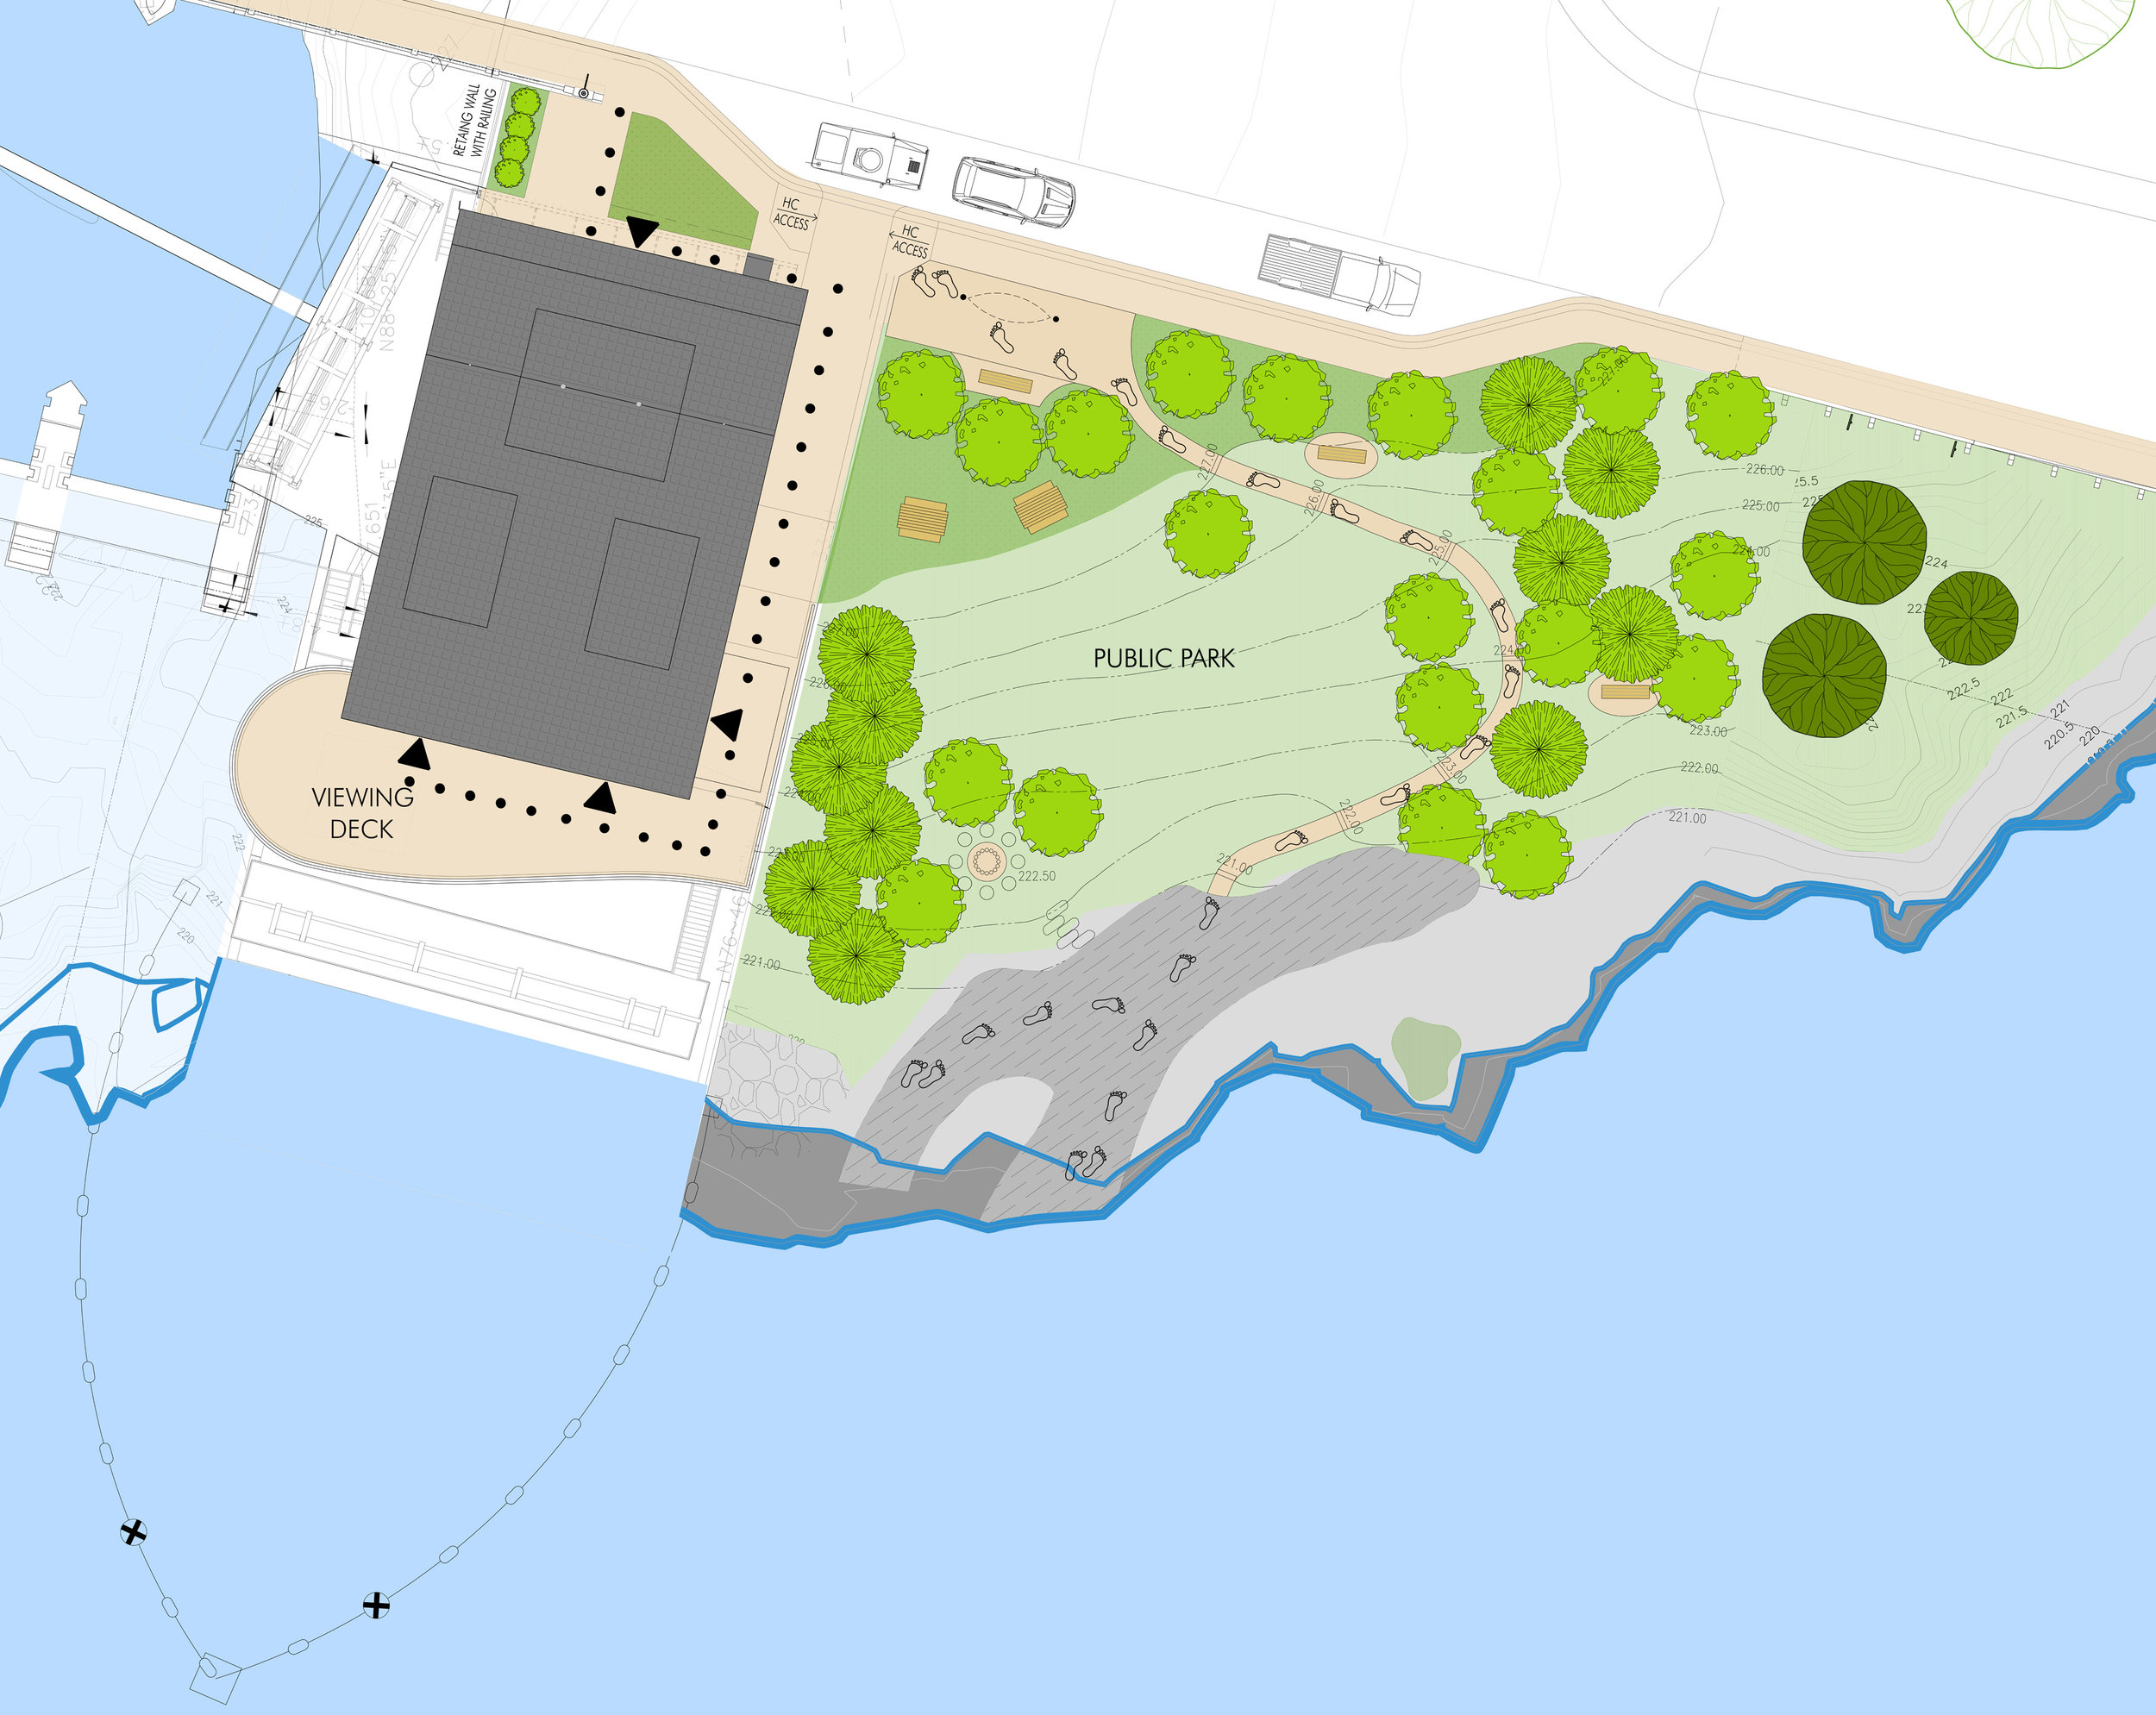 Site plan showing power house, public park, new parking spaces in front of building